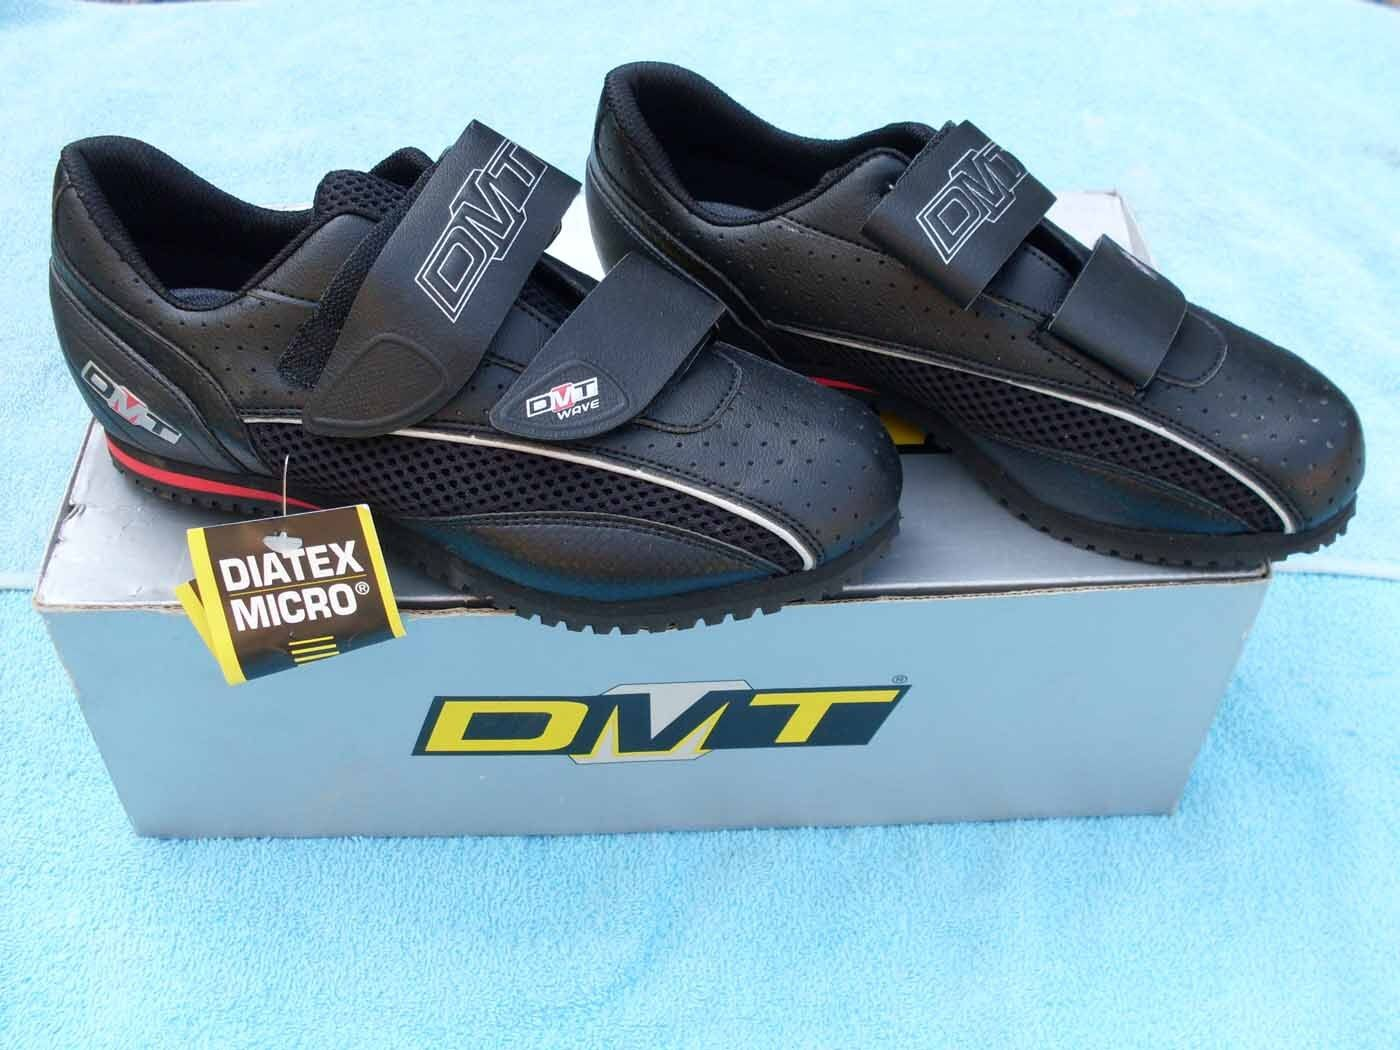 New Cycling shoes DMT wave spinning 04 diatex micro time look SPD size 38